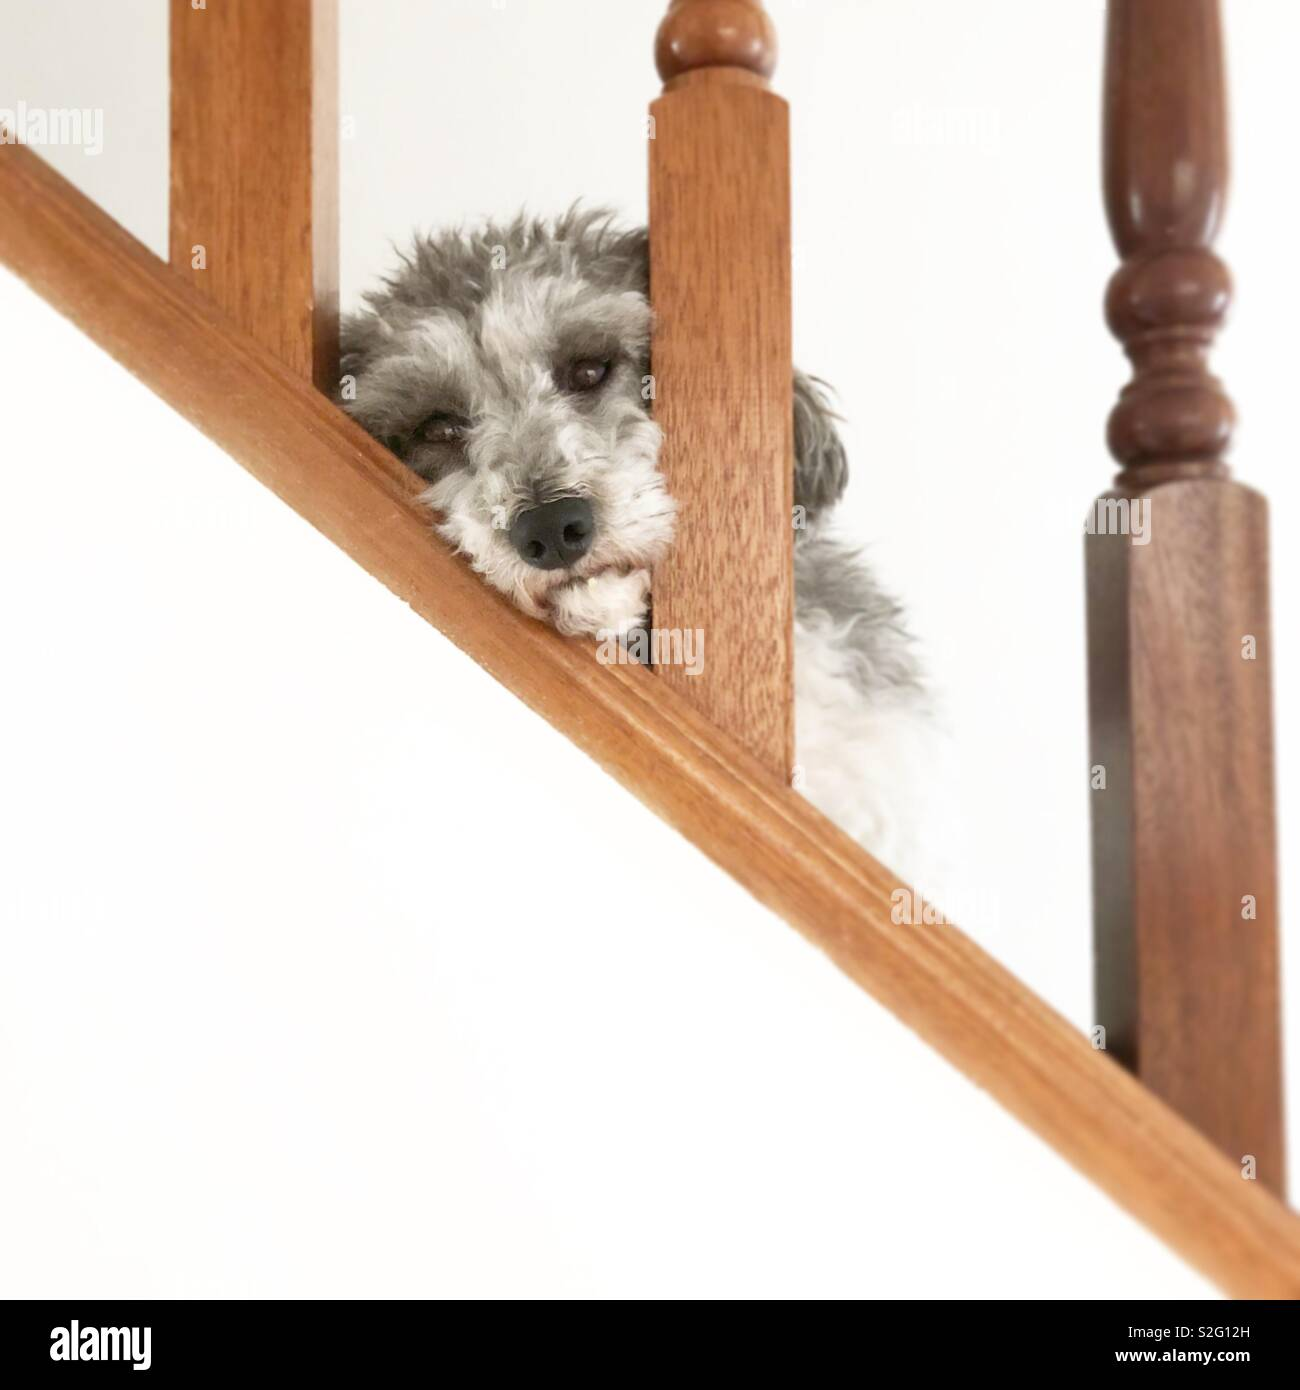 Day dreaming dog - Stock Image